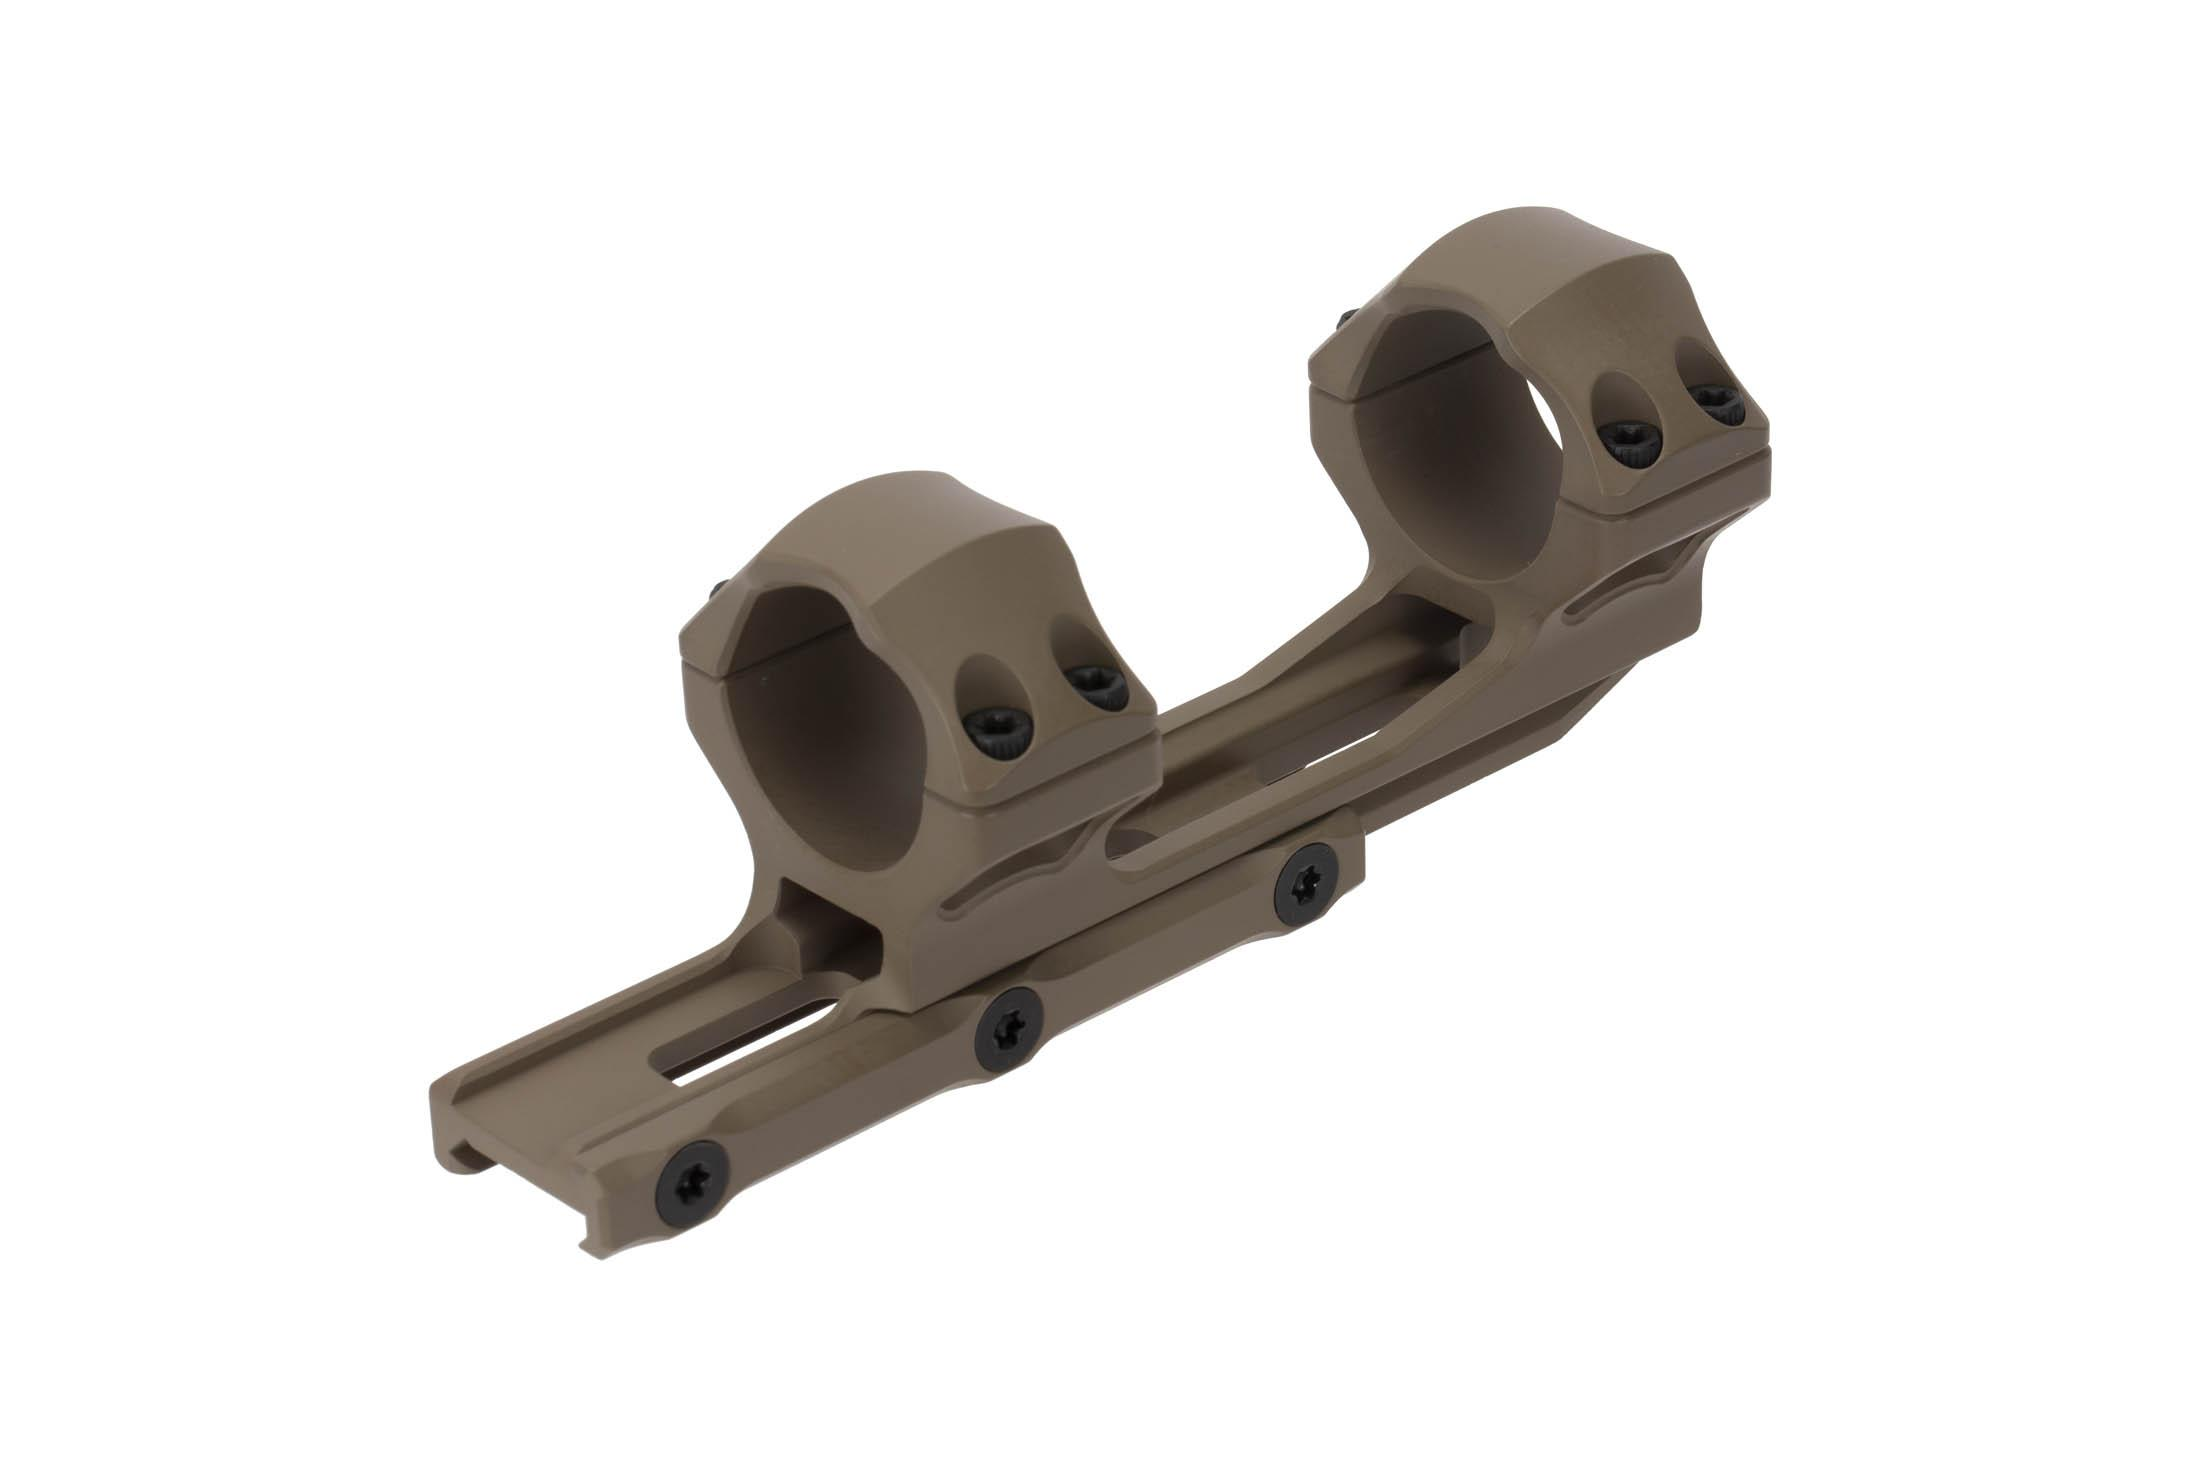 Leapers UTG ACCU-SYNC 30mm extended scope mount with FDE medium height rings mounts securely with three cross bolts